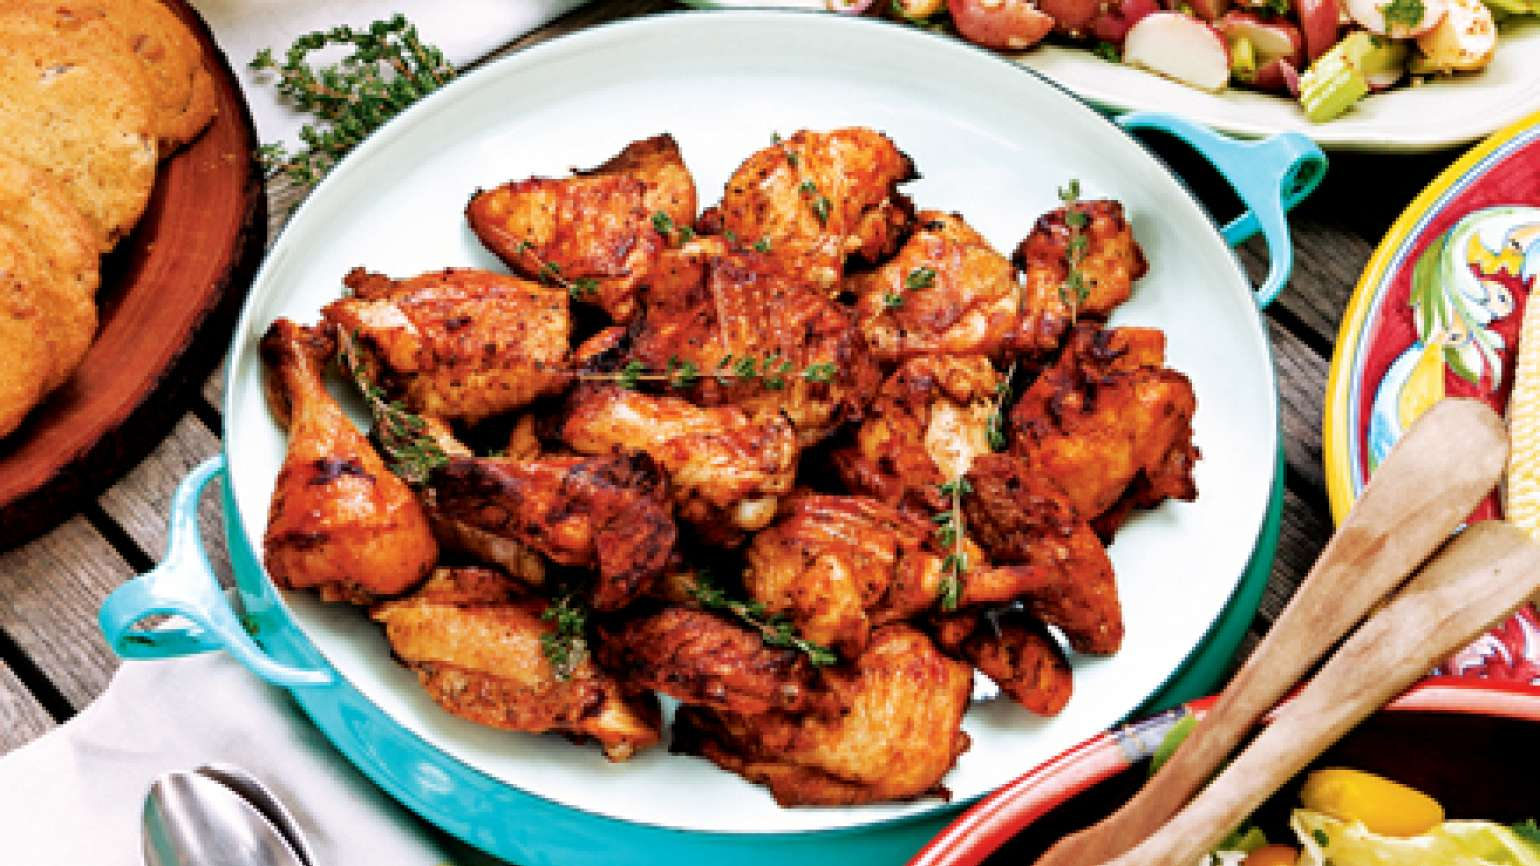 Savory Slow-Grilled Chicken